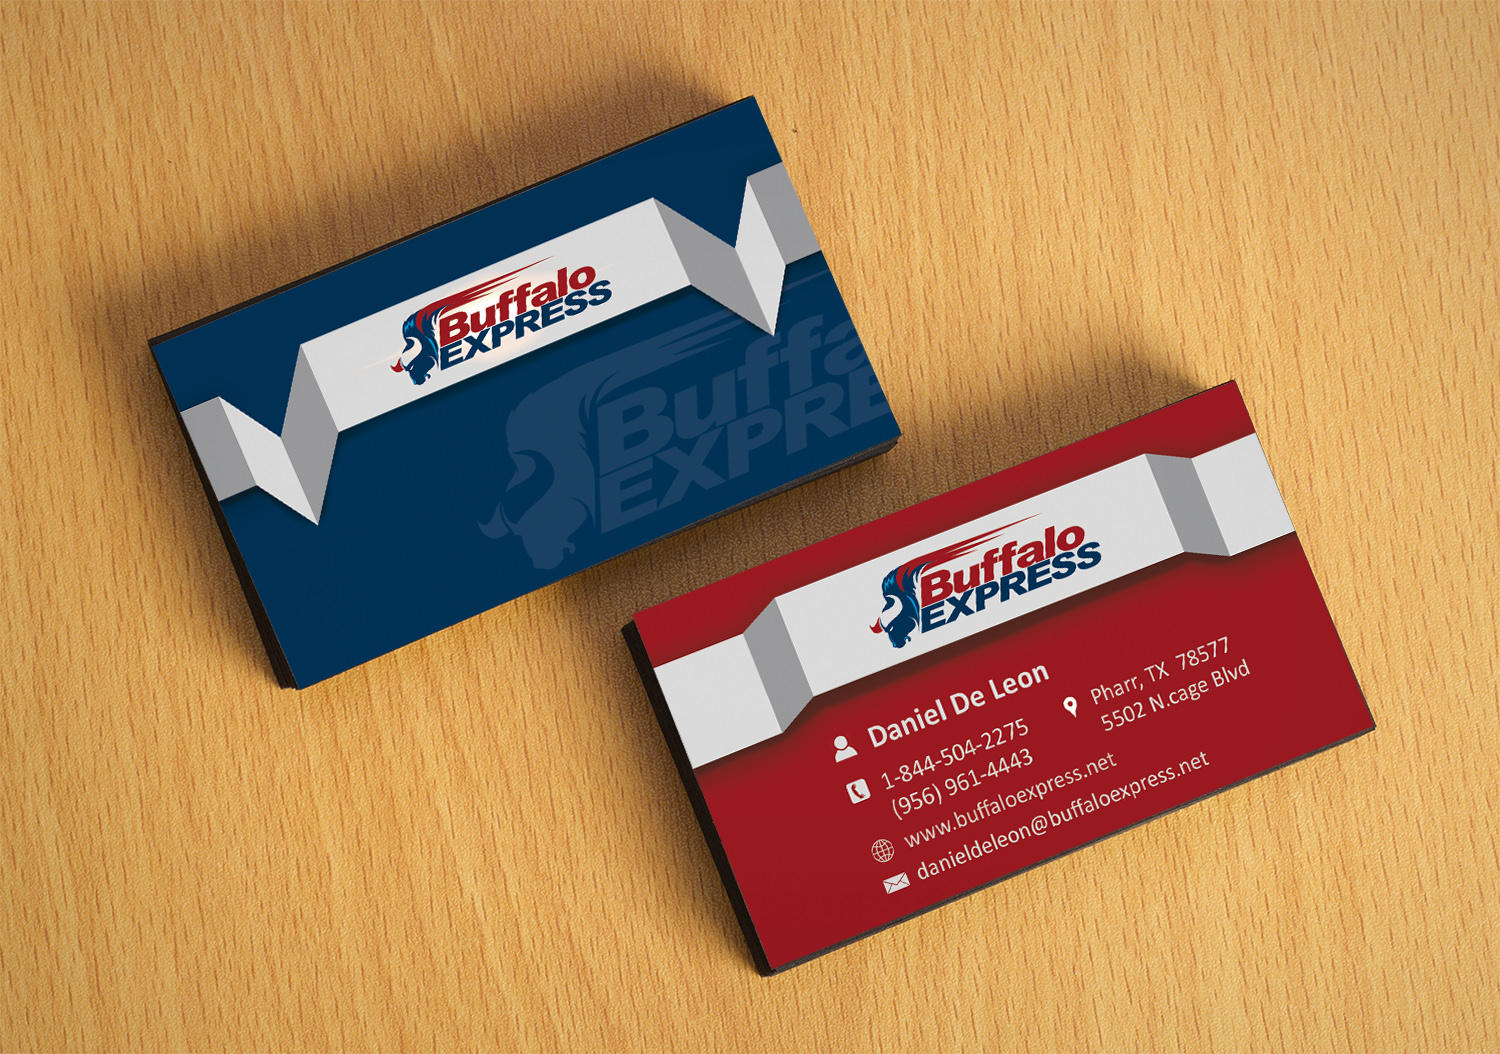 Bce business cards choice image business card template professional upmarket business card design for buffalo express by business card design by 4m design for colourmoves